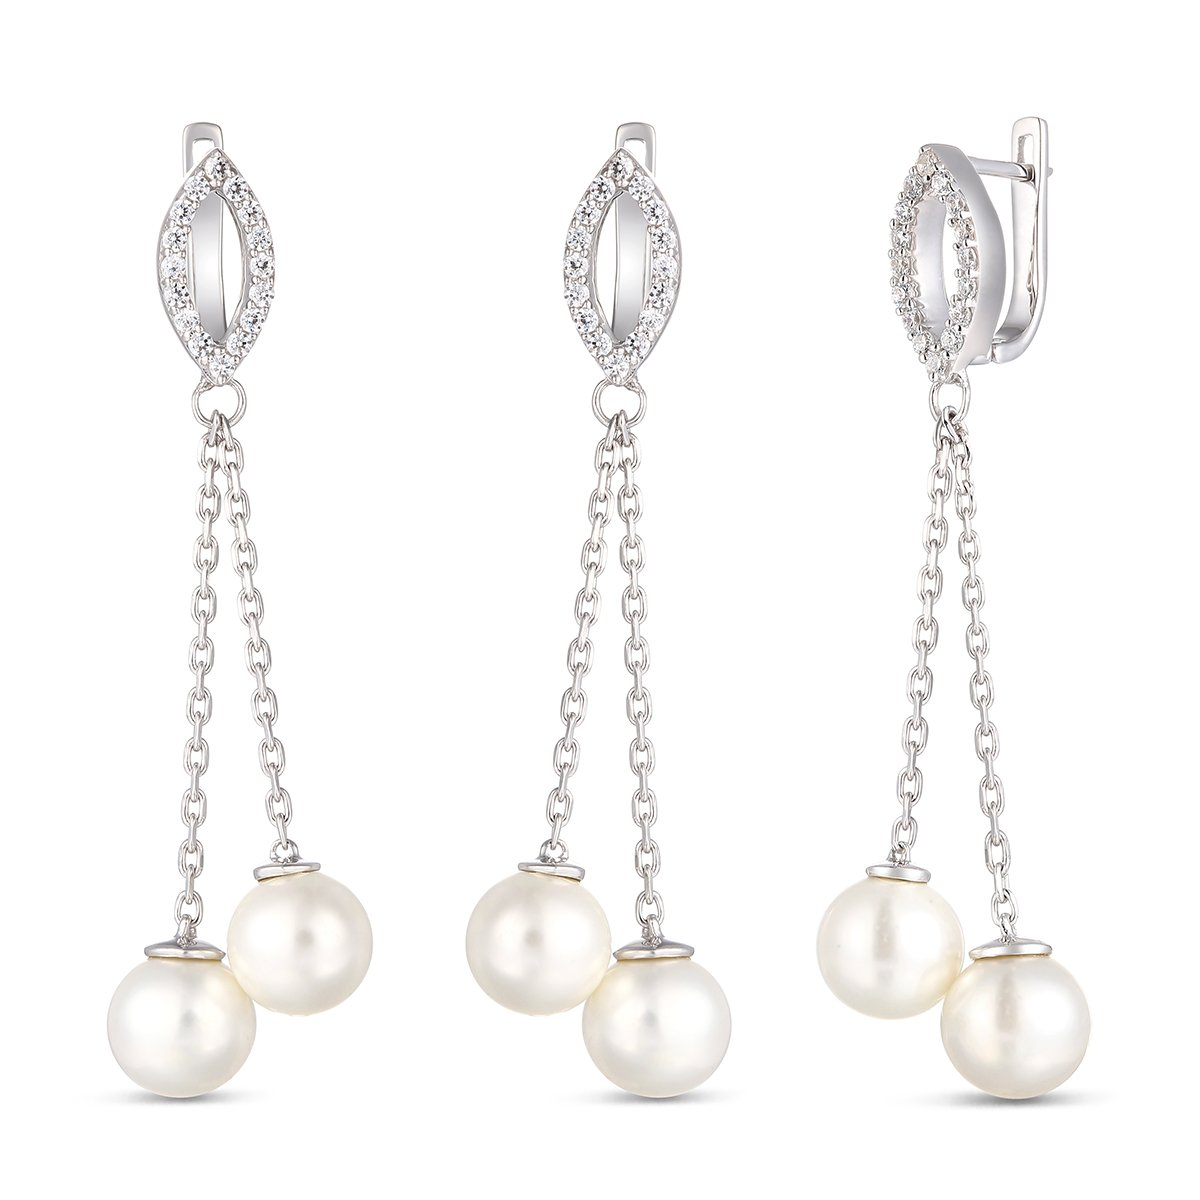 Easter Offer, Ferhe New York 925 Sterling Silver Earring with Freshwater pearl & Cubic zirconia, Pearl Earrings